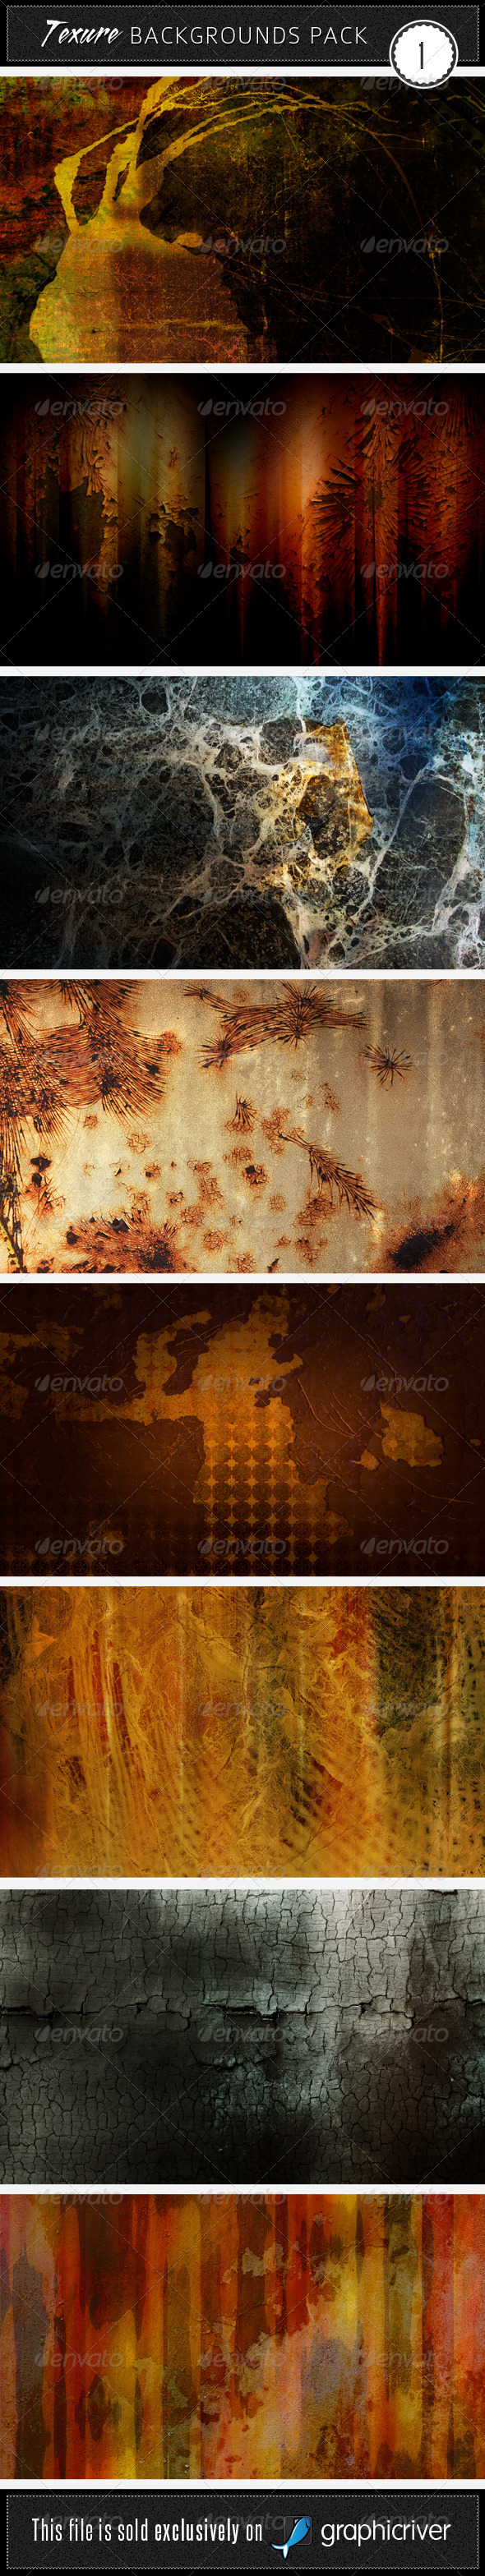 GraphicRiver Texture Backgrounds Pack 1 35159